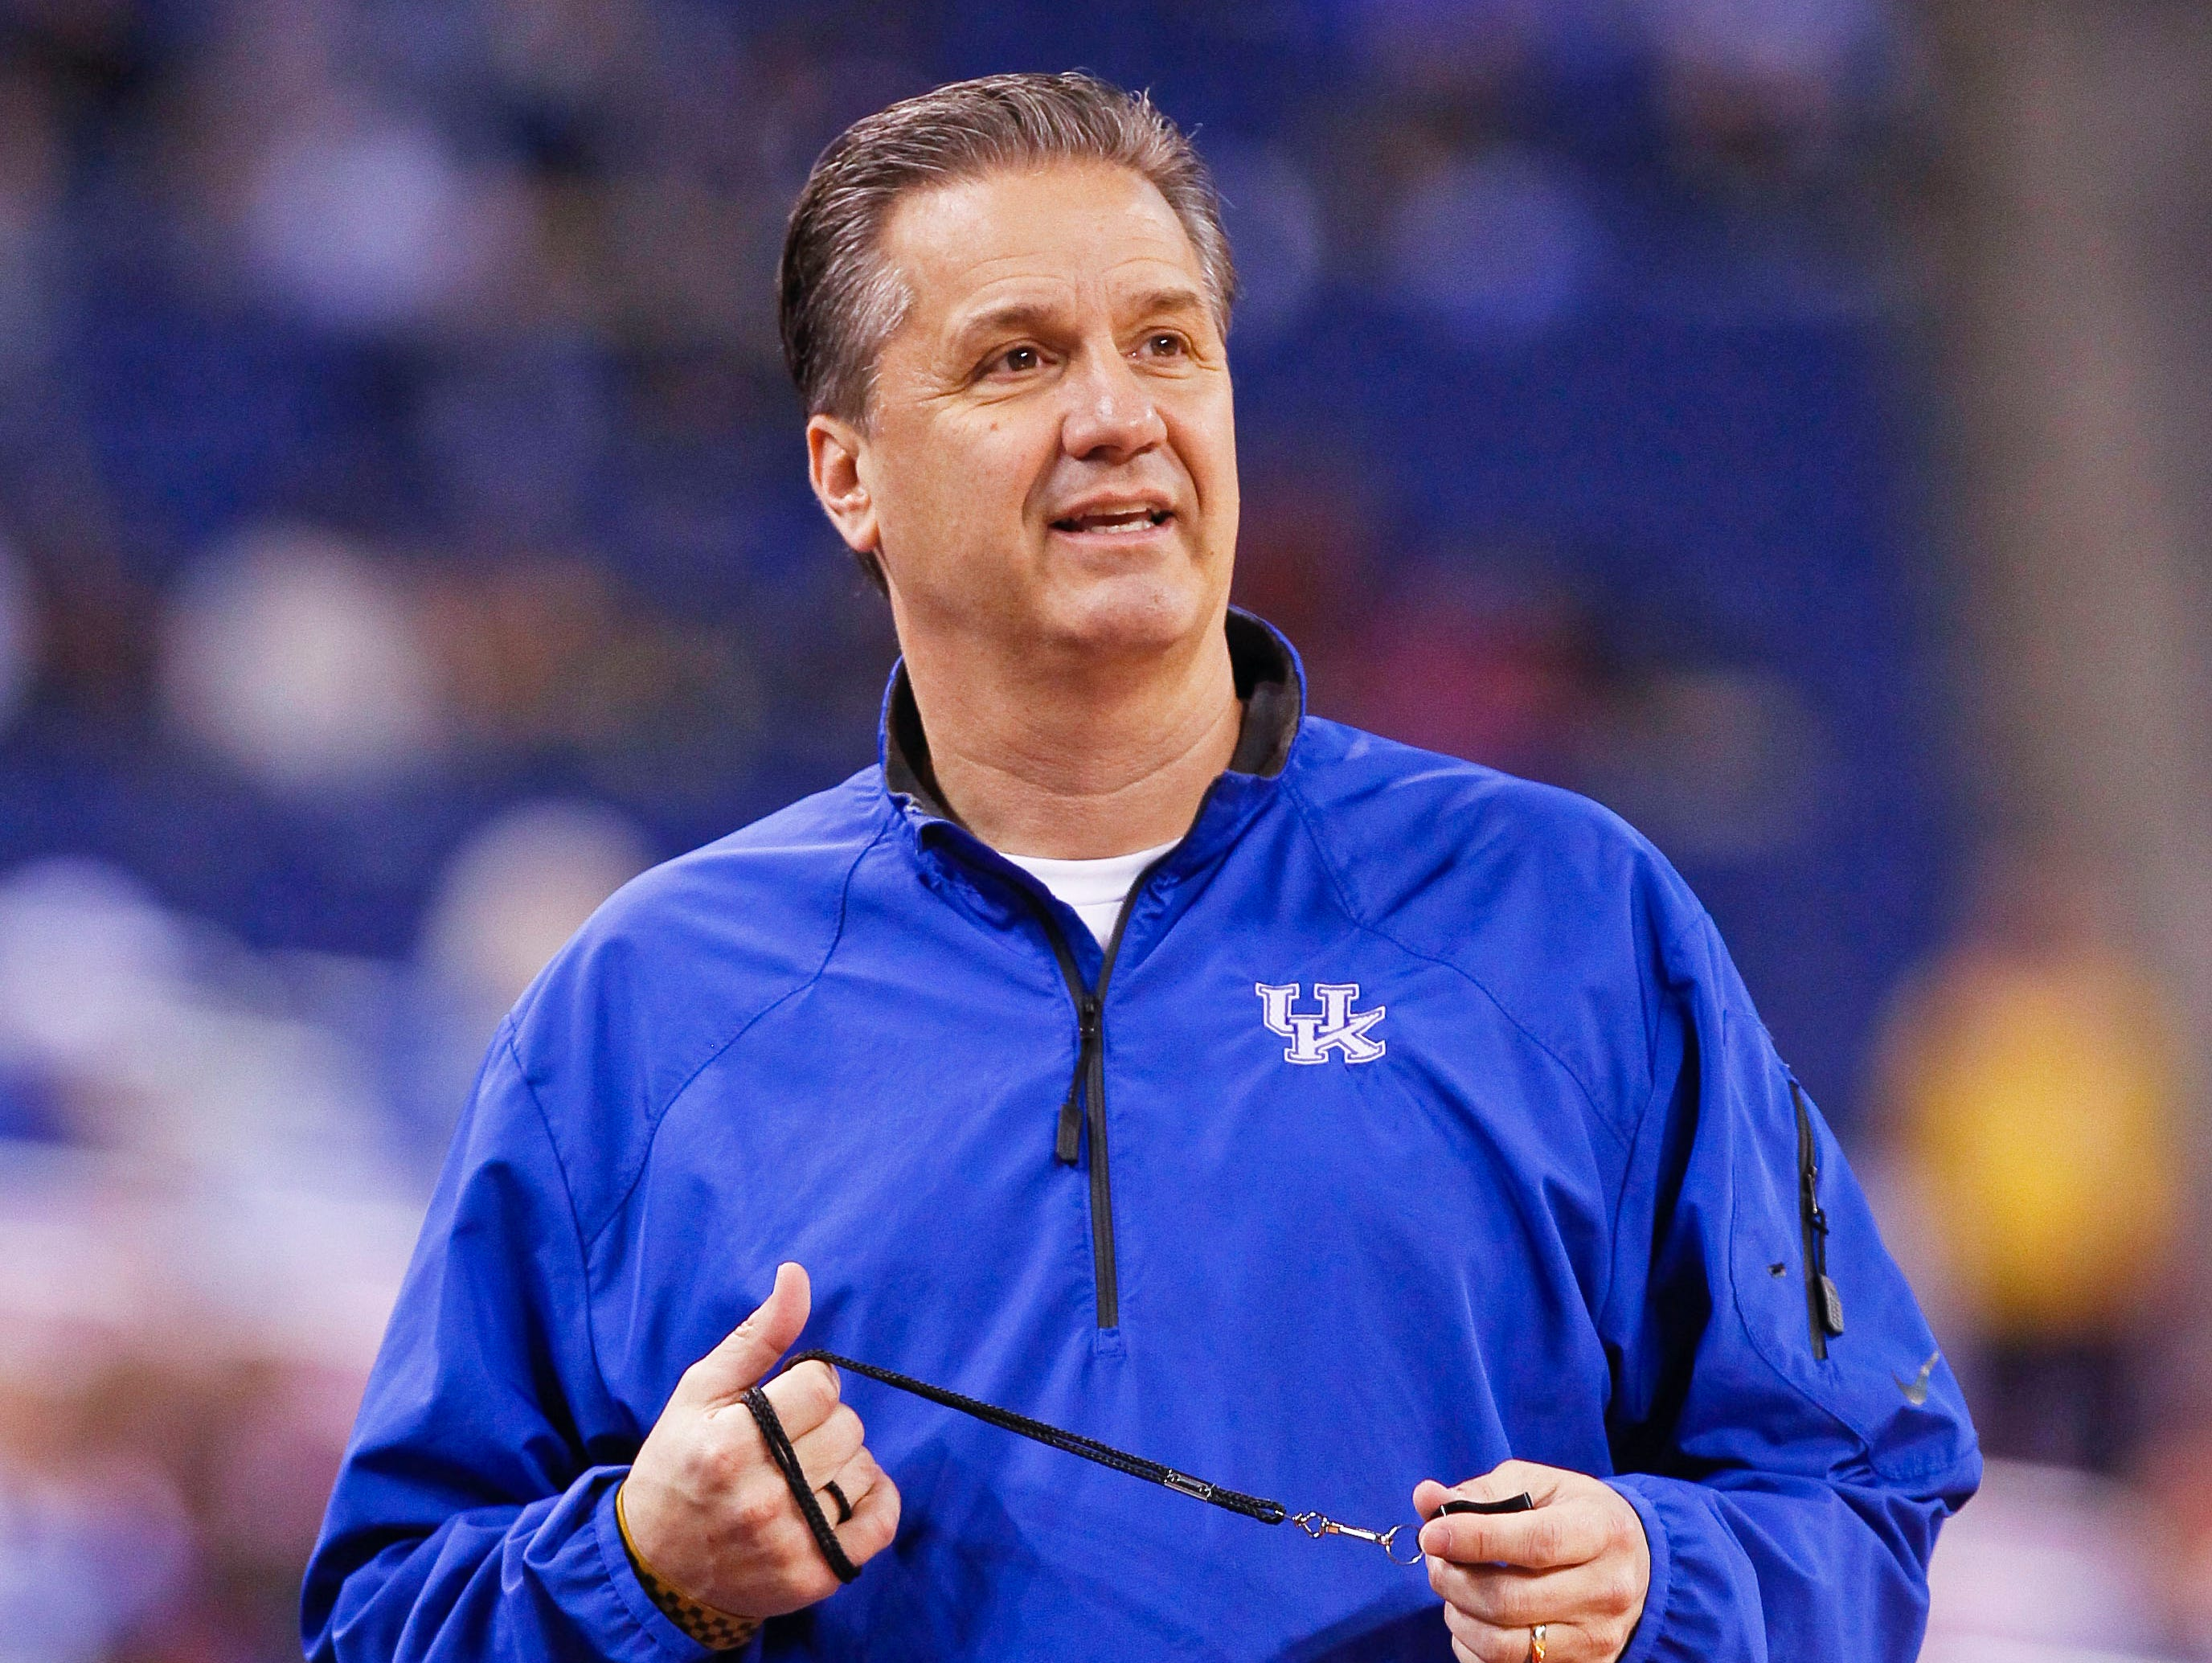 Kentucky head coach John Calipari watches his team practice for a Final Four game on April 3 in Indianapolis.